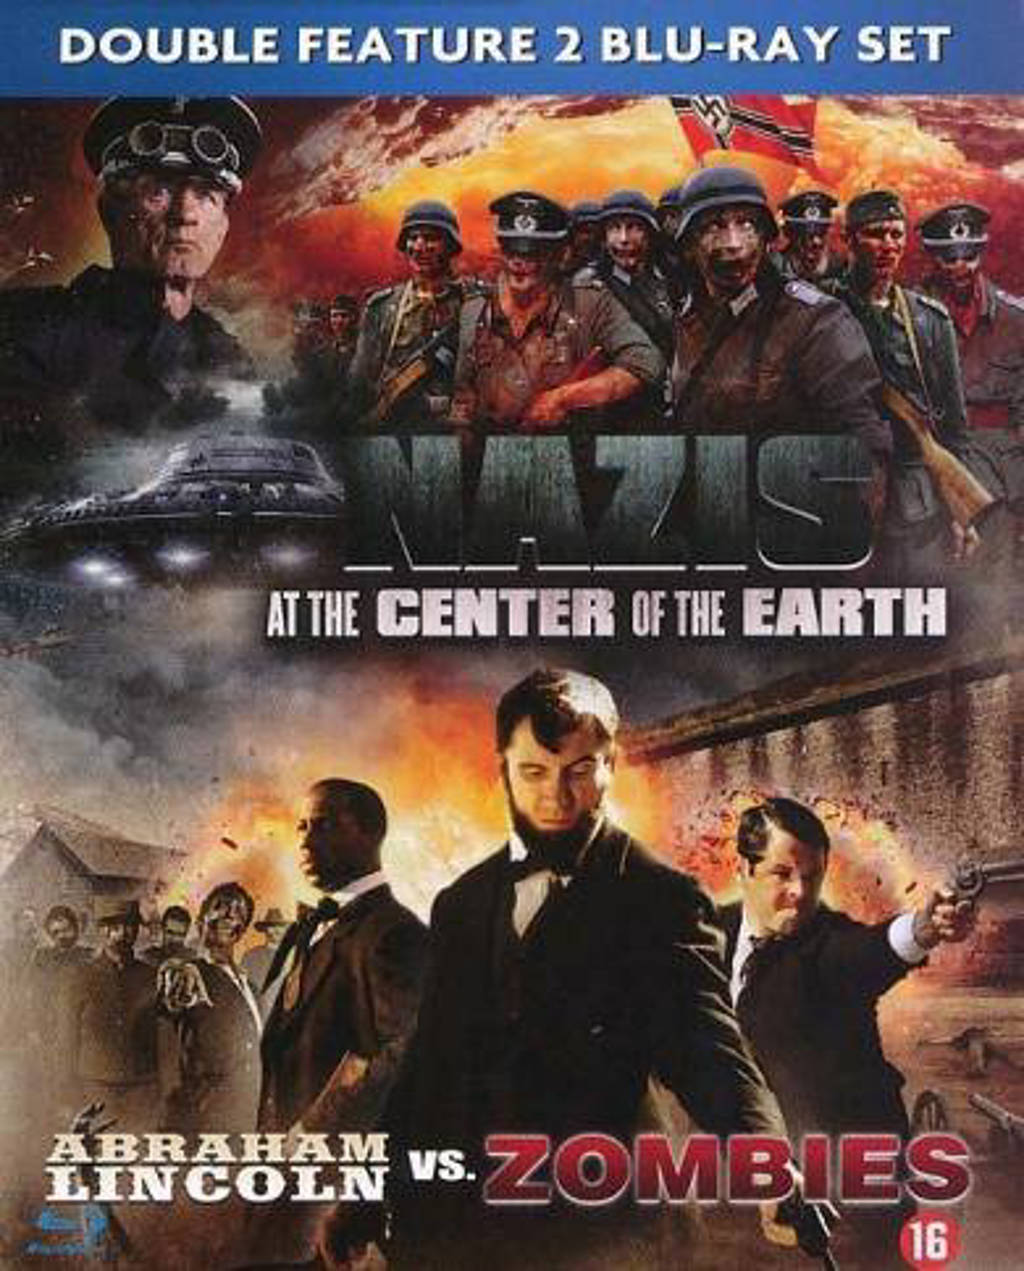 Abraham Lincoln/Nazi's at the centre of earth (Blu-ray)